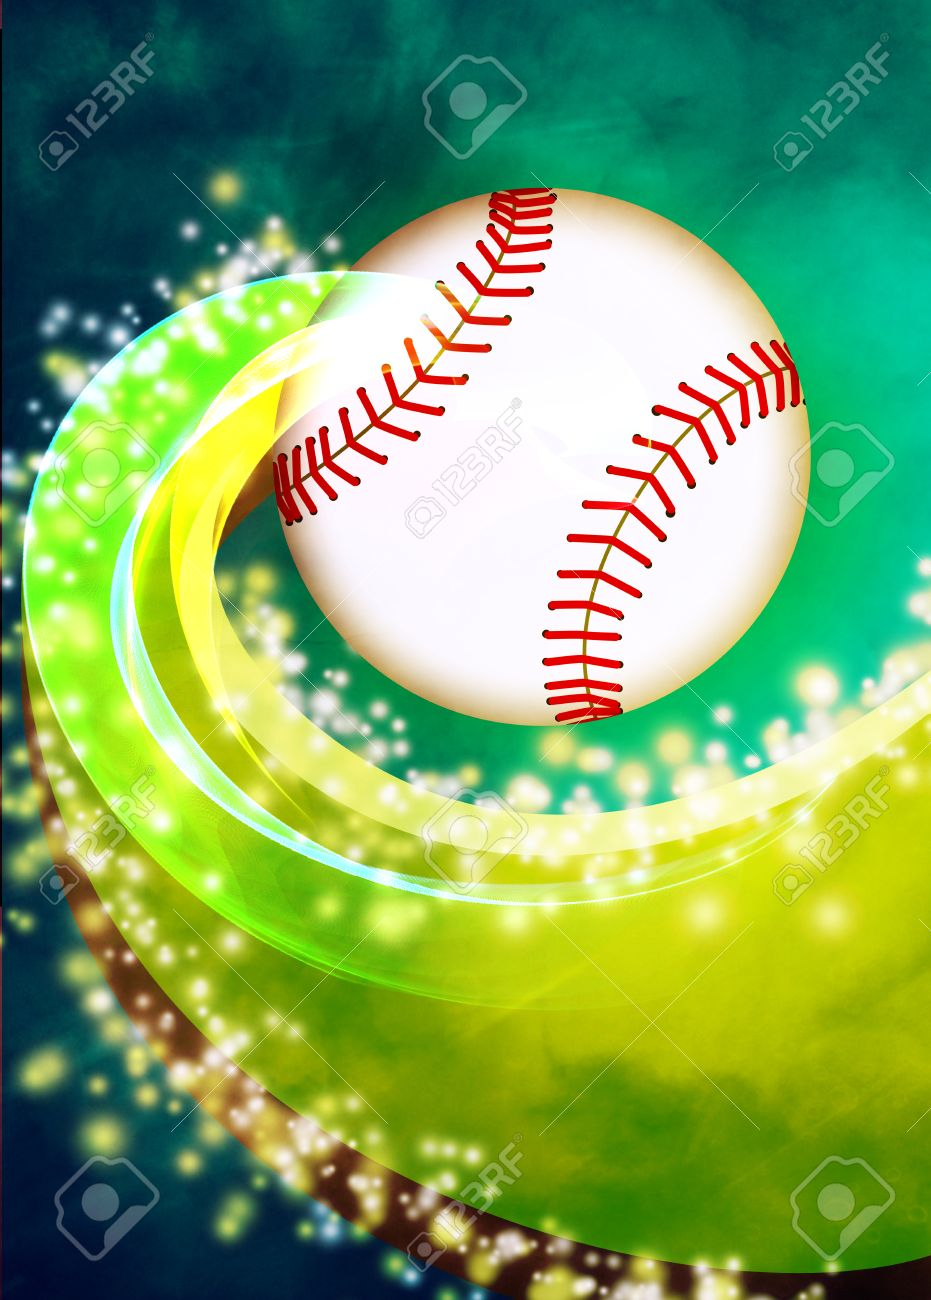 baseball invitation poster or flyer abstract background baseball invitation poster or flyer abstract background empty space stock photo 26901245